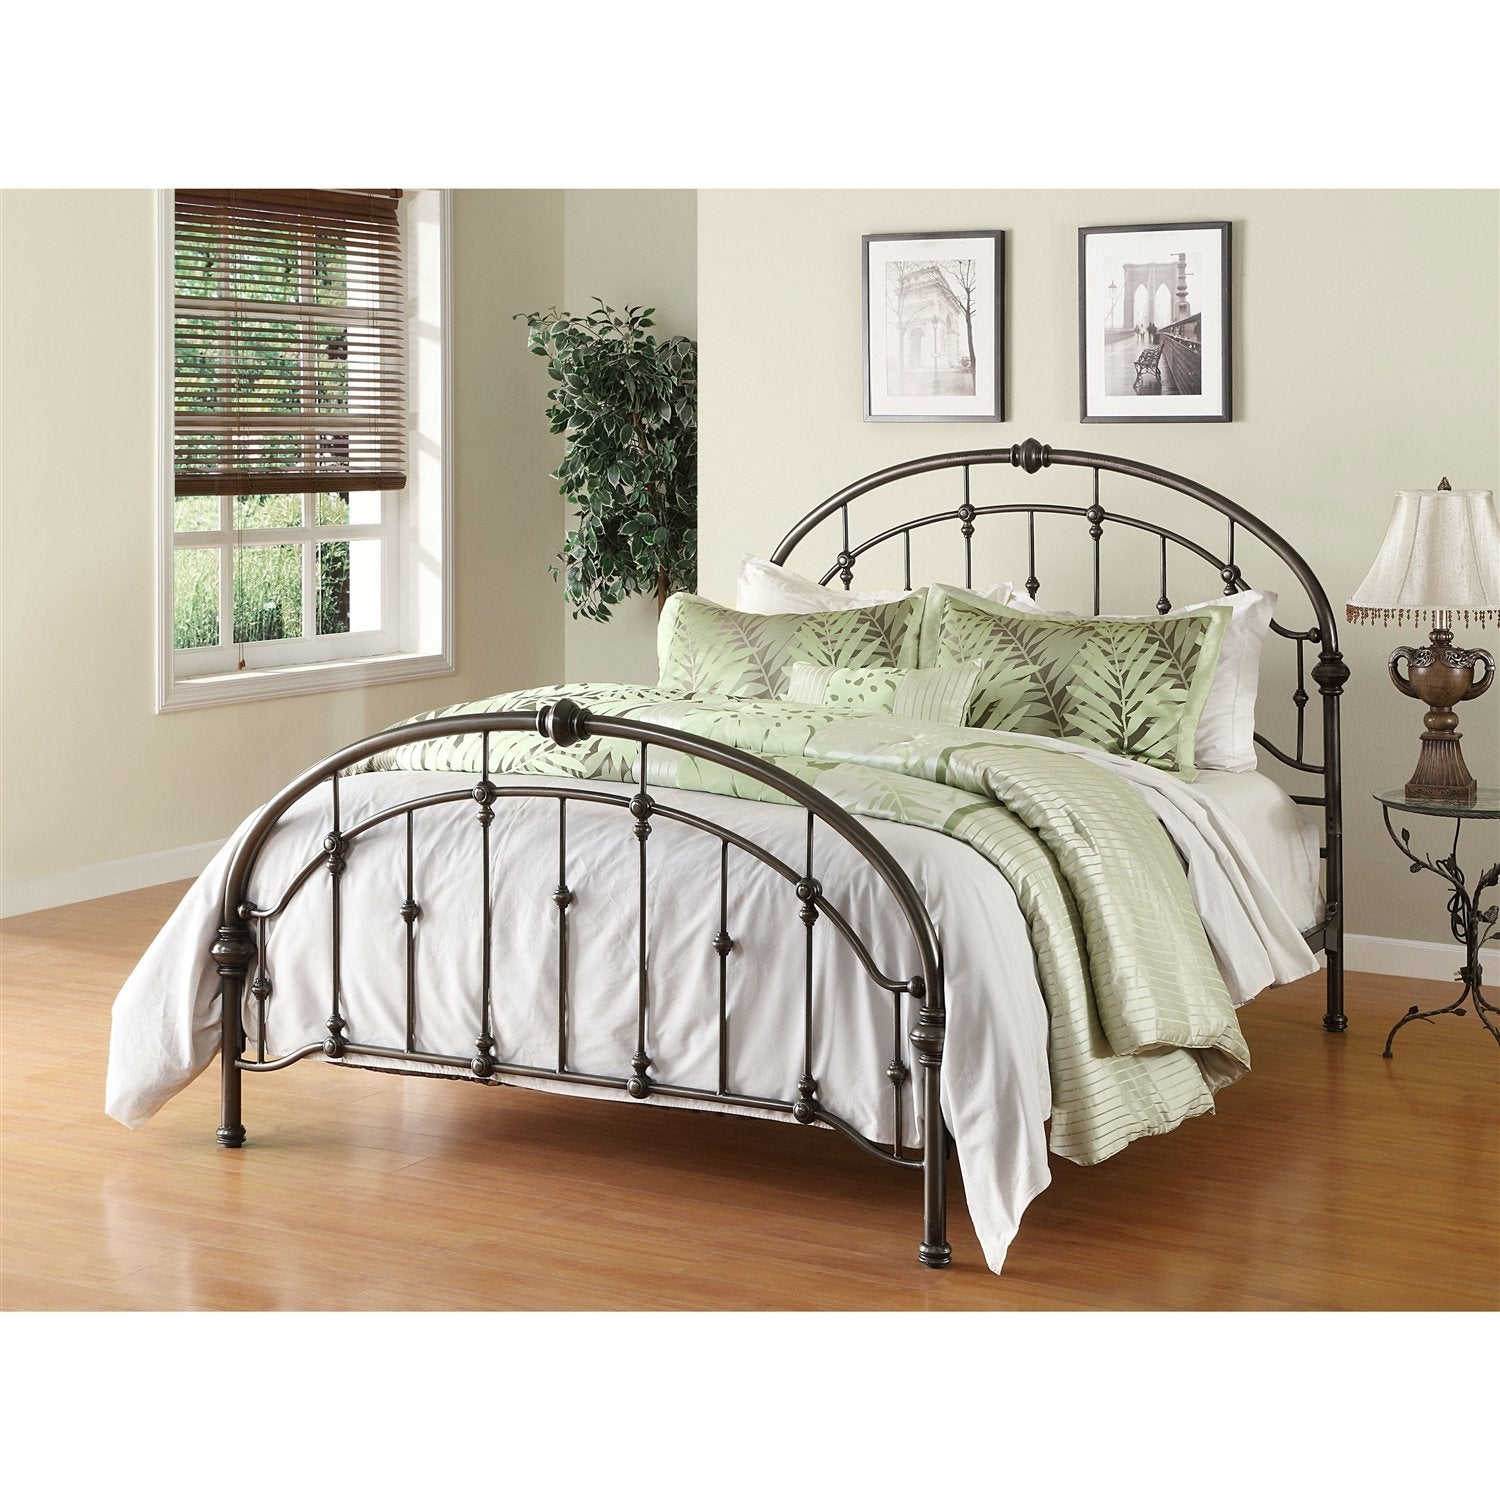 Queen size Metal Bed in Antique Bronze Finish with Headboard & Footboard